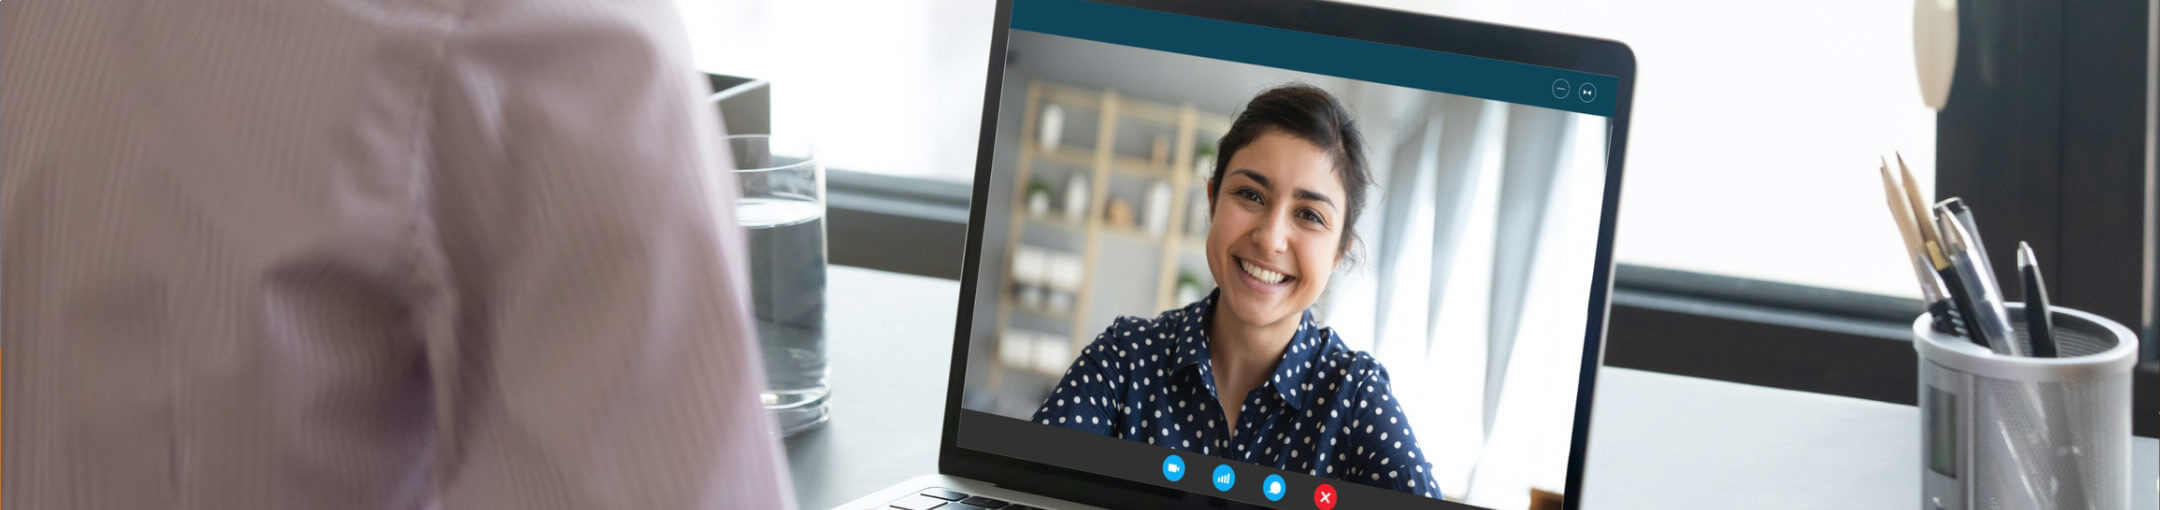 A person looking at a screen displaying the video feed of another person during a Skype video call.